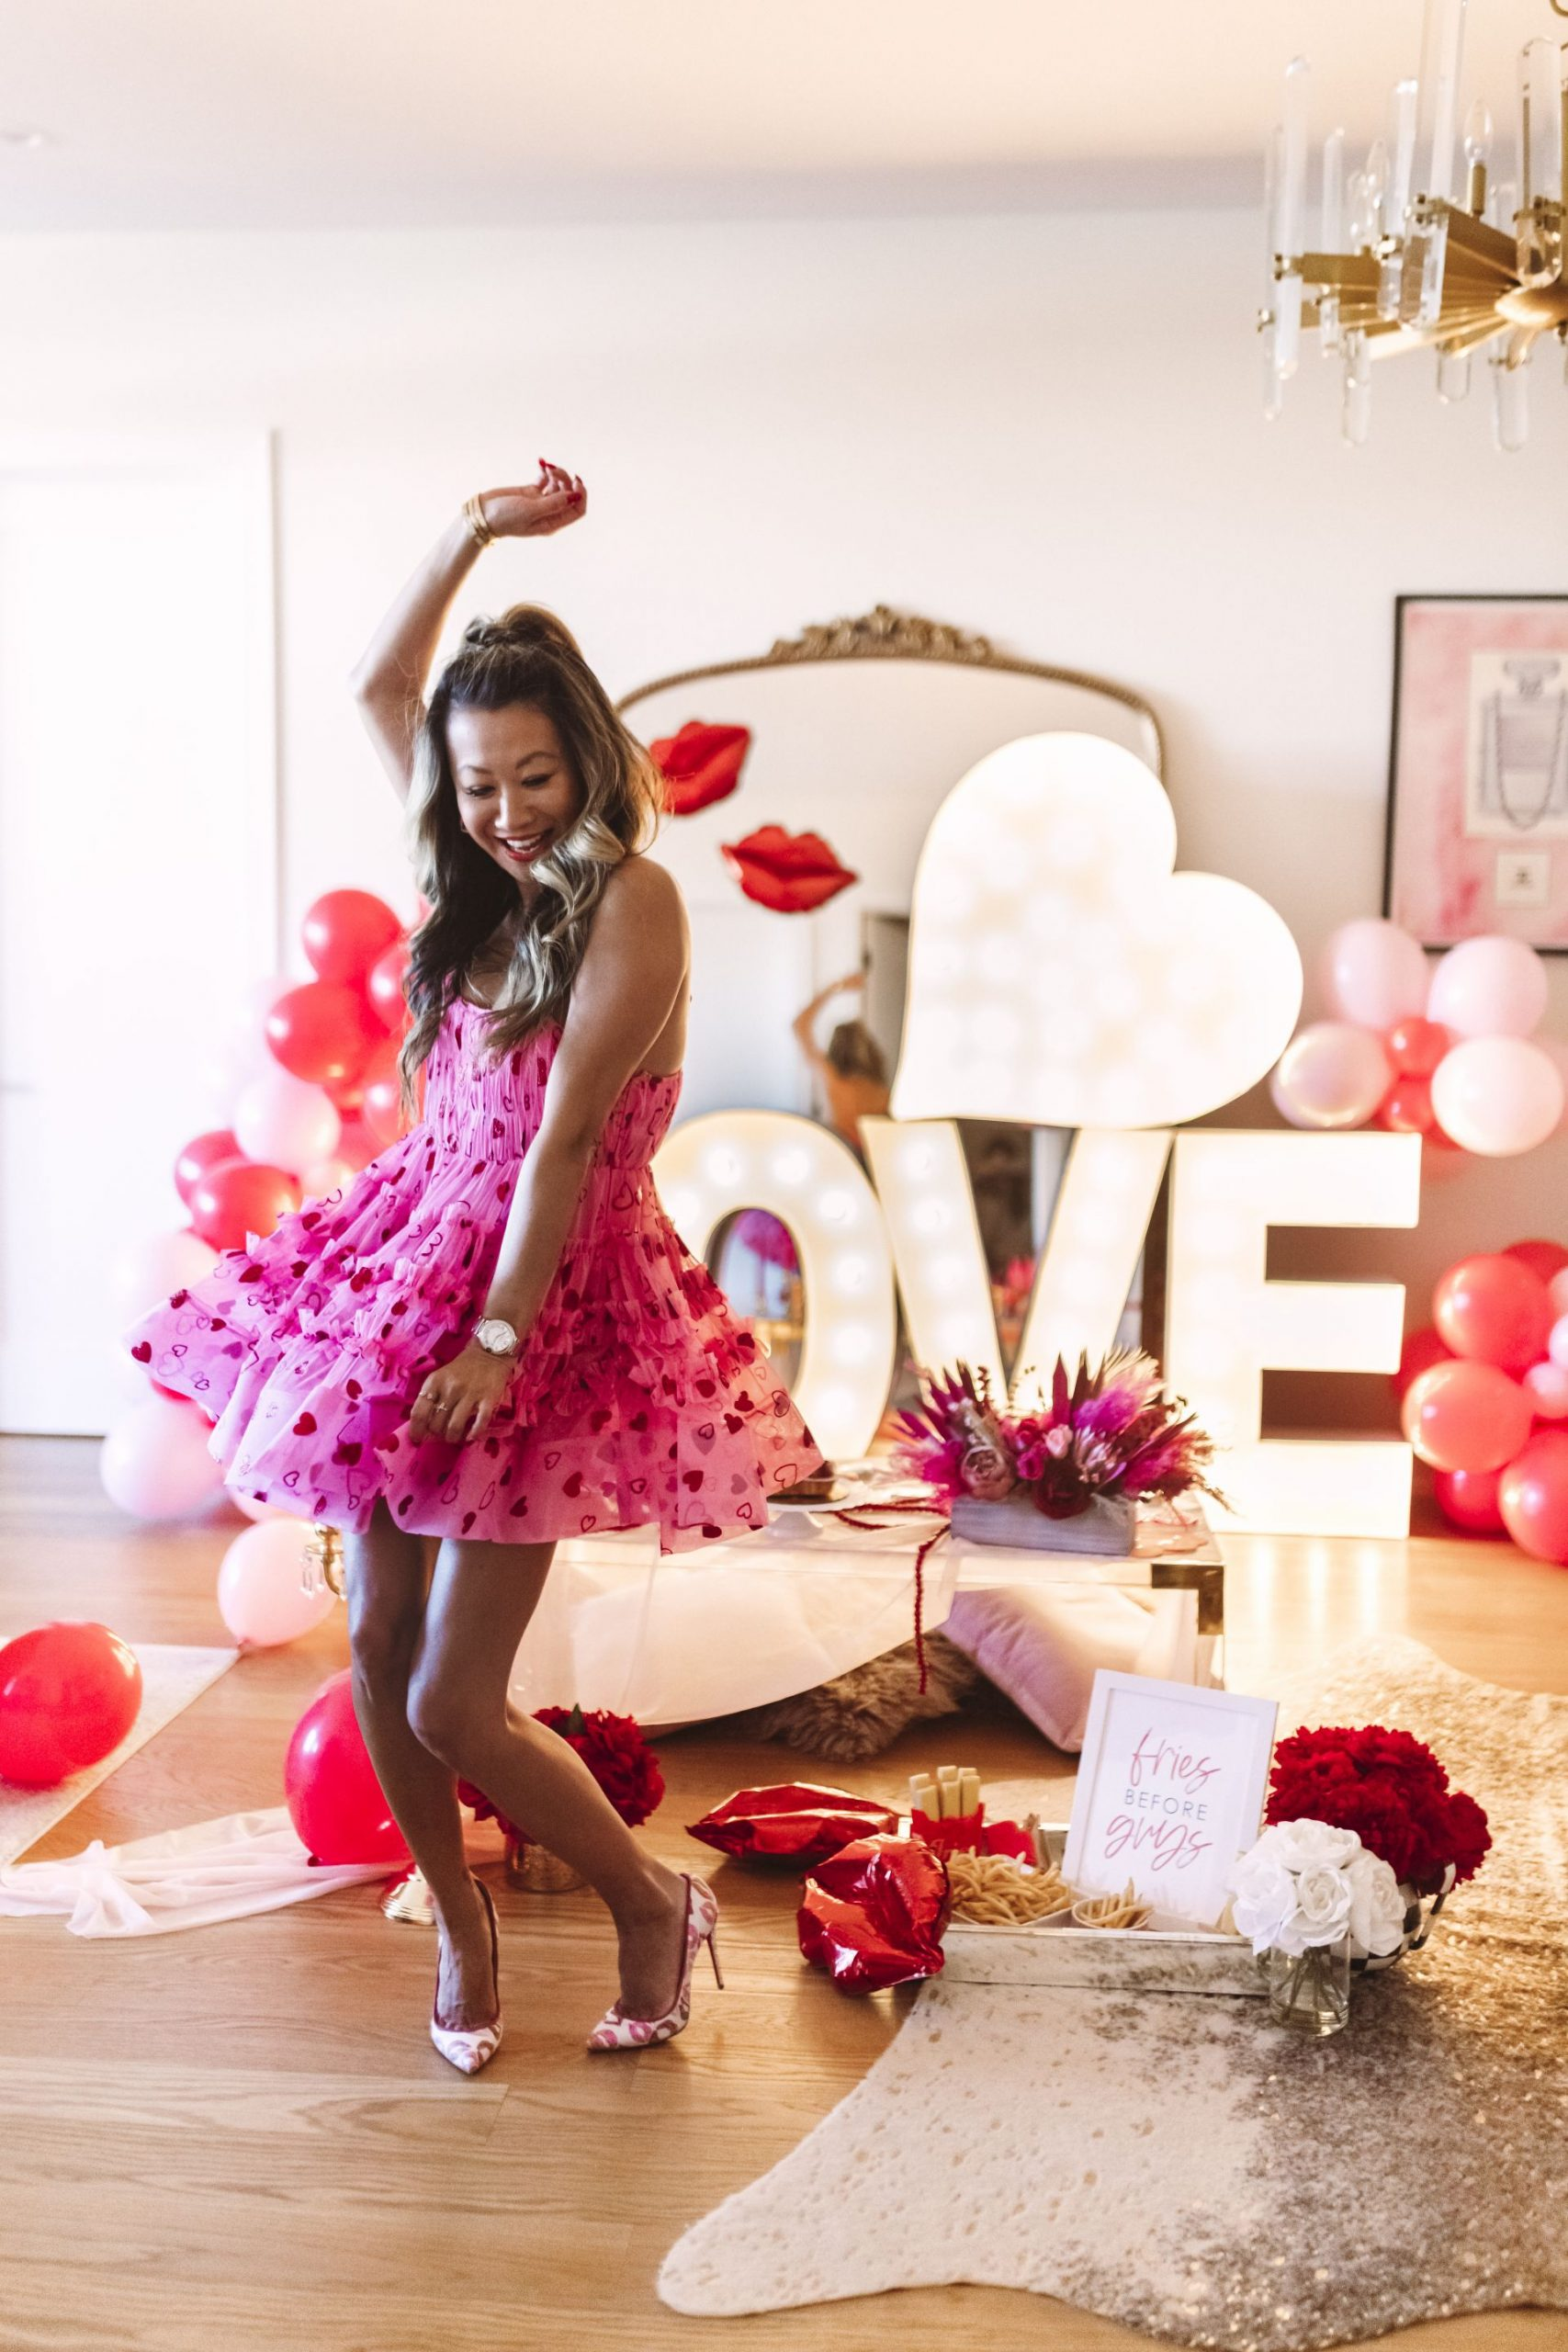 glam Valentine's and Galentine's party, Valentine's Day style, pink vday dress, valentines day dress, galentines day dress, Glam Party Decor Ideas, Galentine's party decor, Valentine's day party decor, girls night party decor ideas, Vday party decorations, pink and red party theme, girly partytheme decor, love party theme decor,valentines day party ideas,valentines day party ideas for adults, light up marquee letters for parties, Red Soles and Red Wine, Jennifer Worman, AlphaLit Chicago Marquee Lights